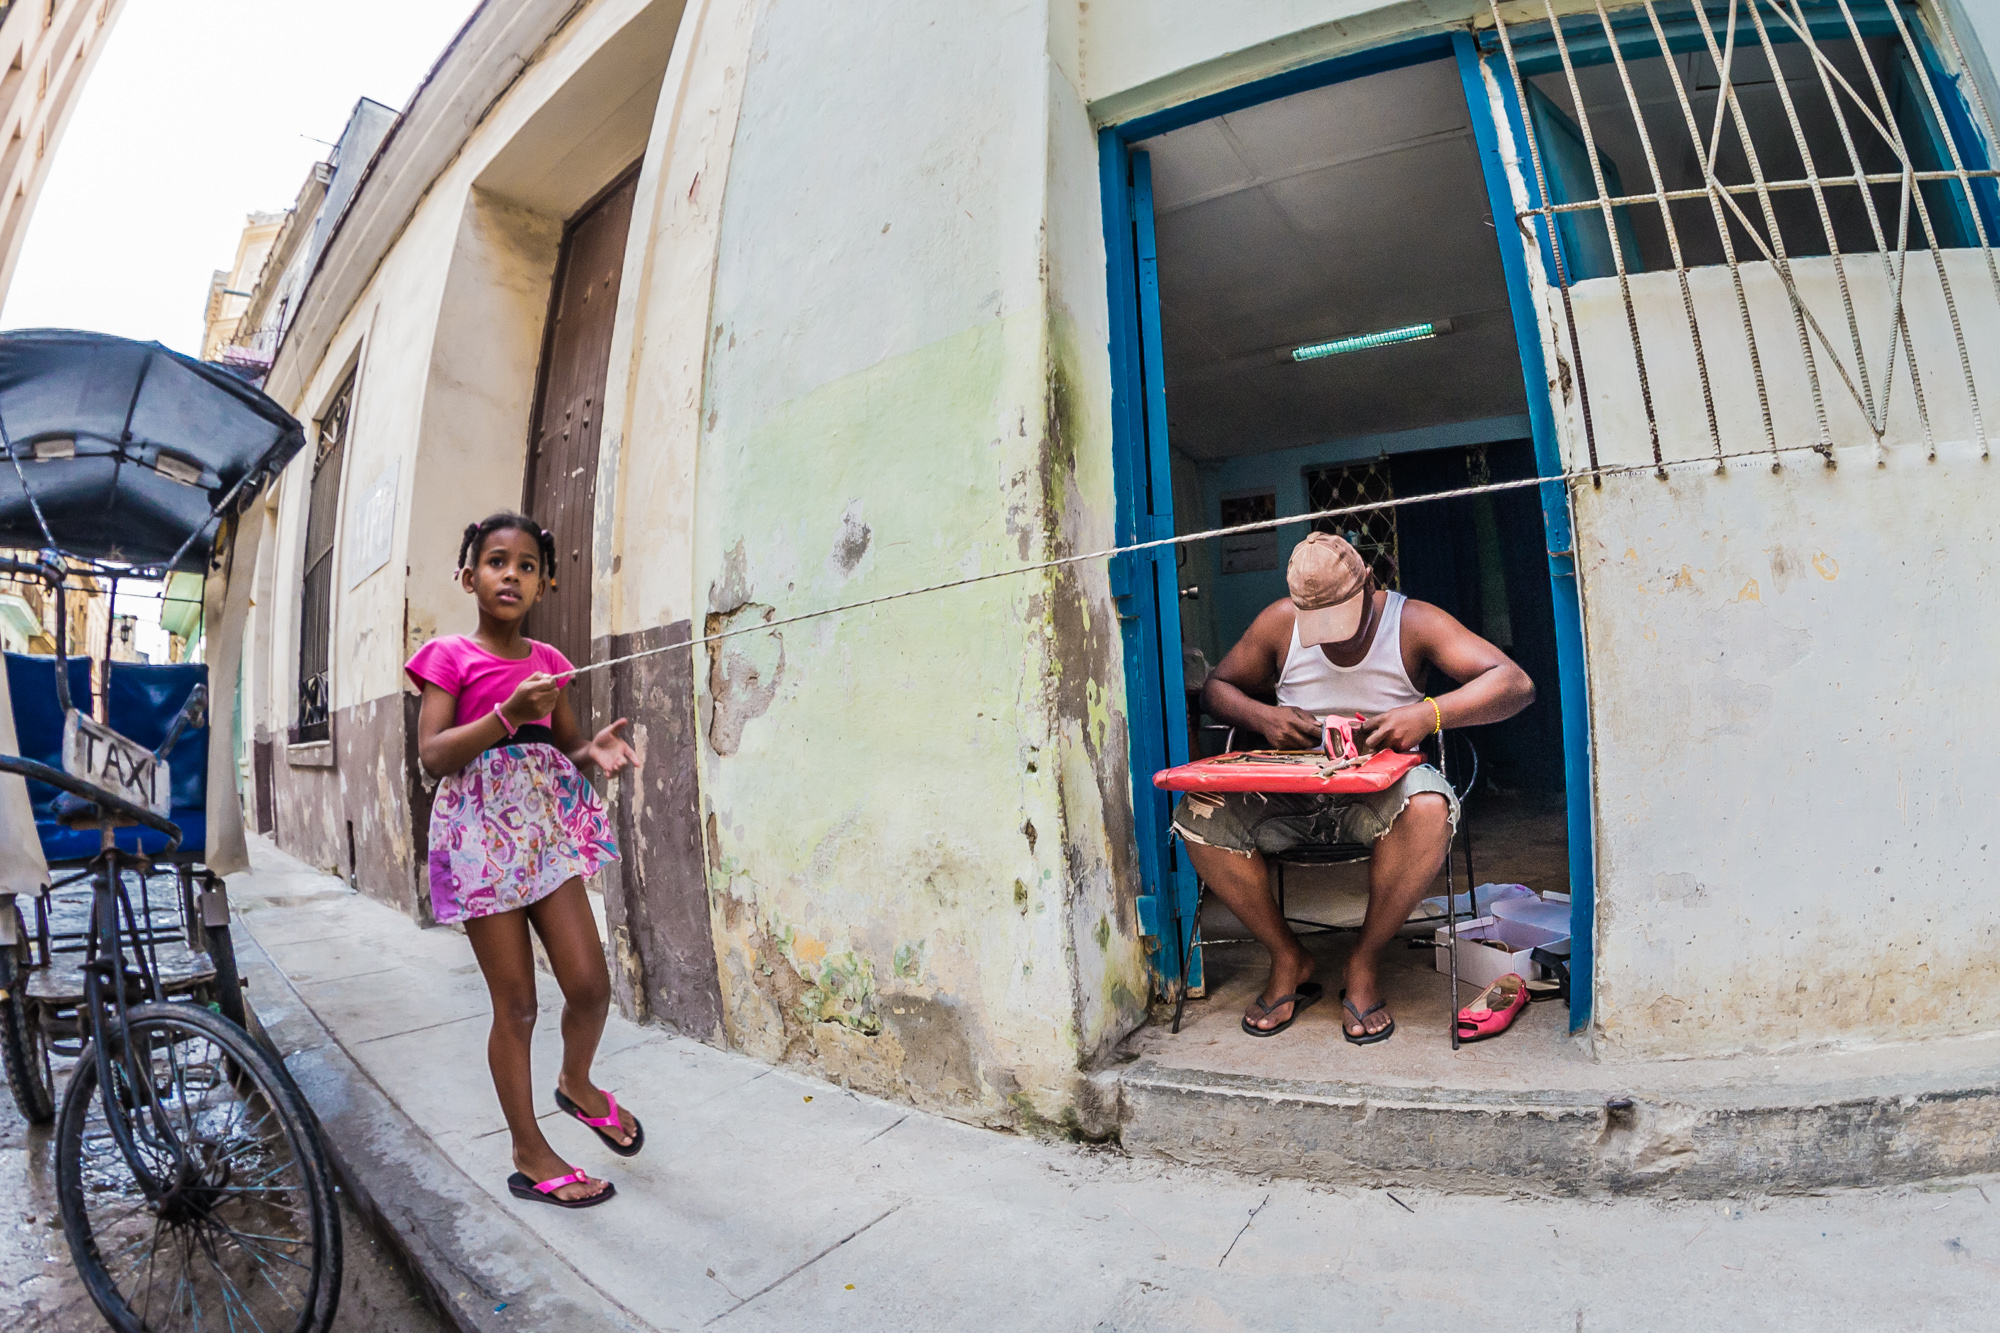 Life before iPads in Old Havana; a girl plays with a rope while her Dad repairs shoes